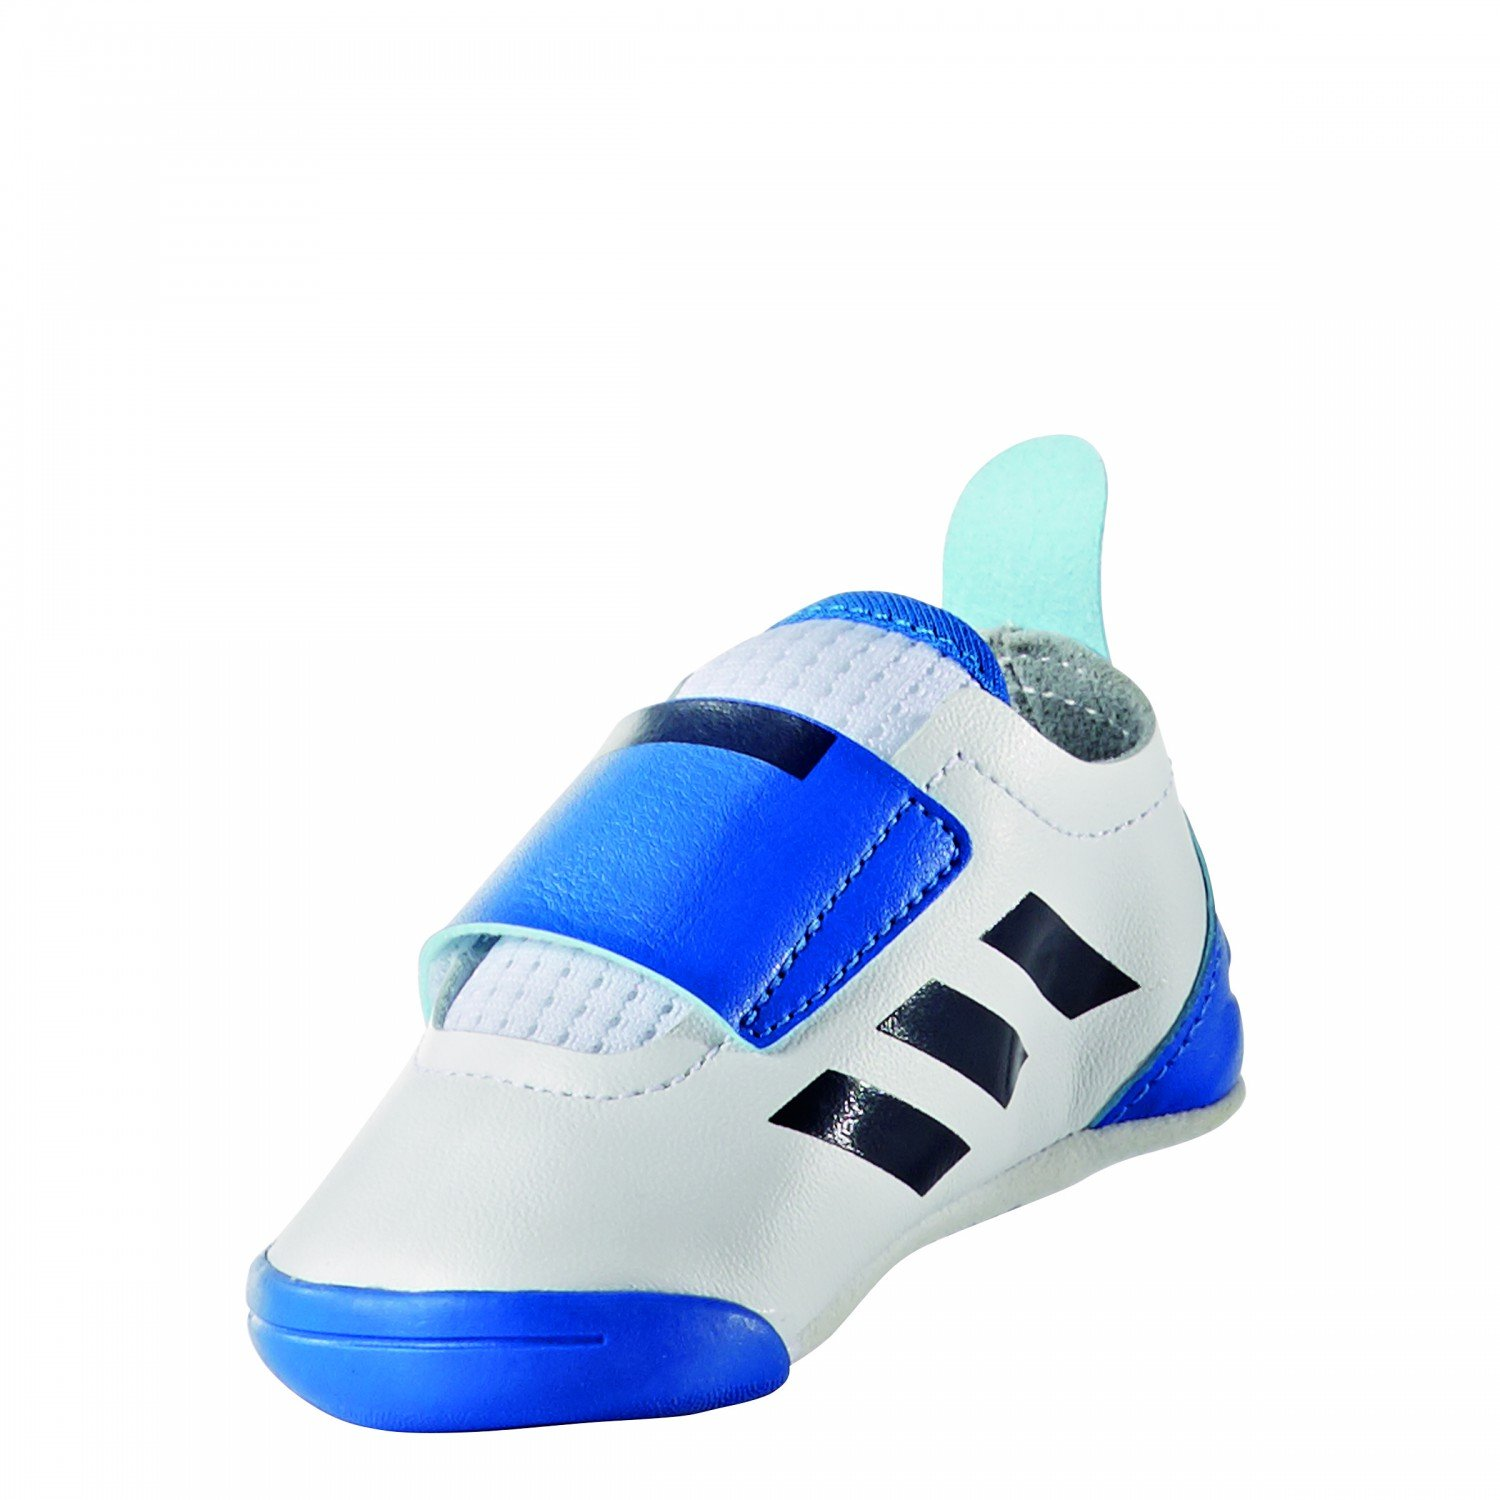 Chaussures adidass nourissons 1065